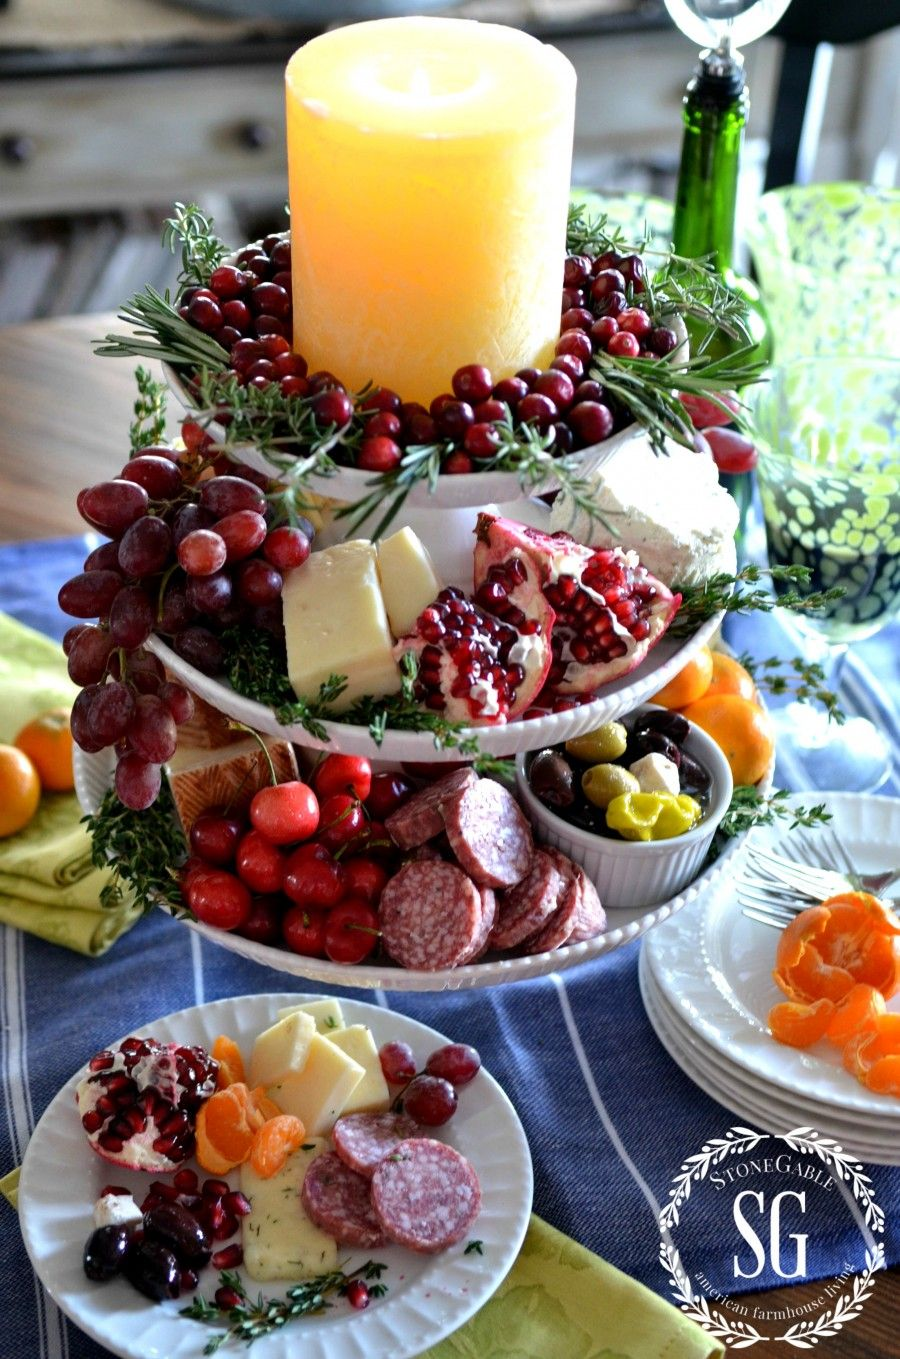 """Vertical Cheese Board: Cheeses: one hard cheese (sharp cheddar), one soft cheese (Borsin), one """"stinky"""" cheese (French Bleu), two favorites (Havarti and Manchego - Meats: hard salami, pepperoni, sporessata - Fruits: cherries, grapes, clementines, pomegranates"""